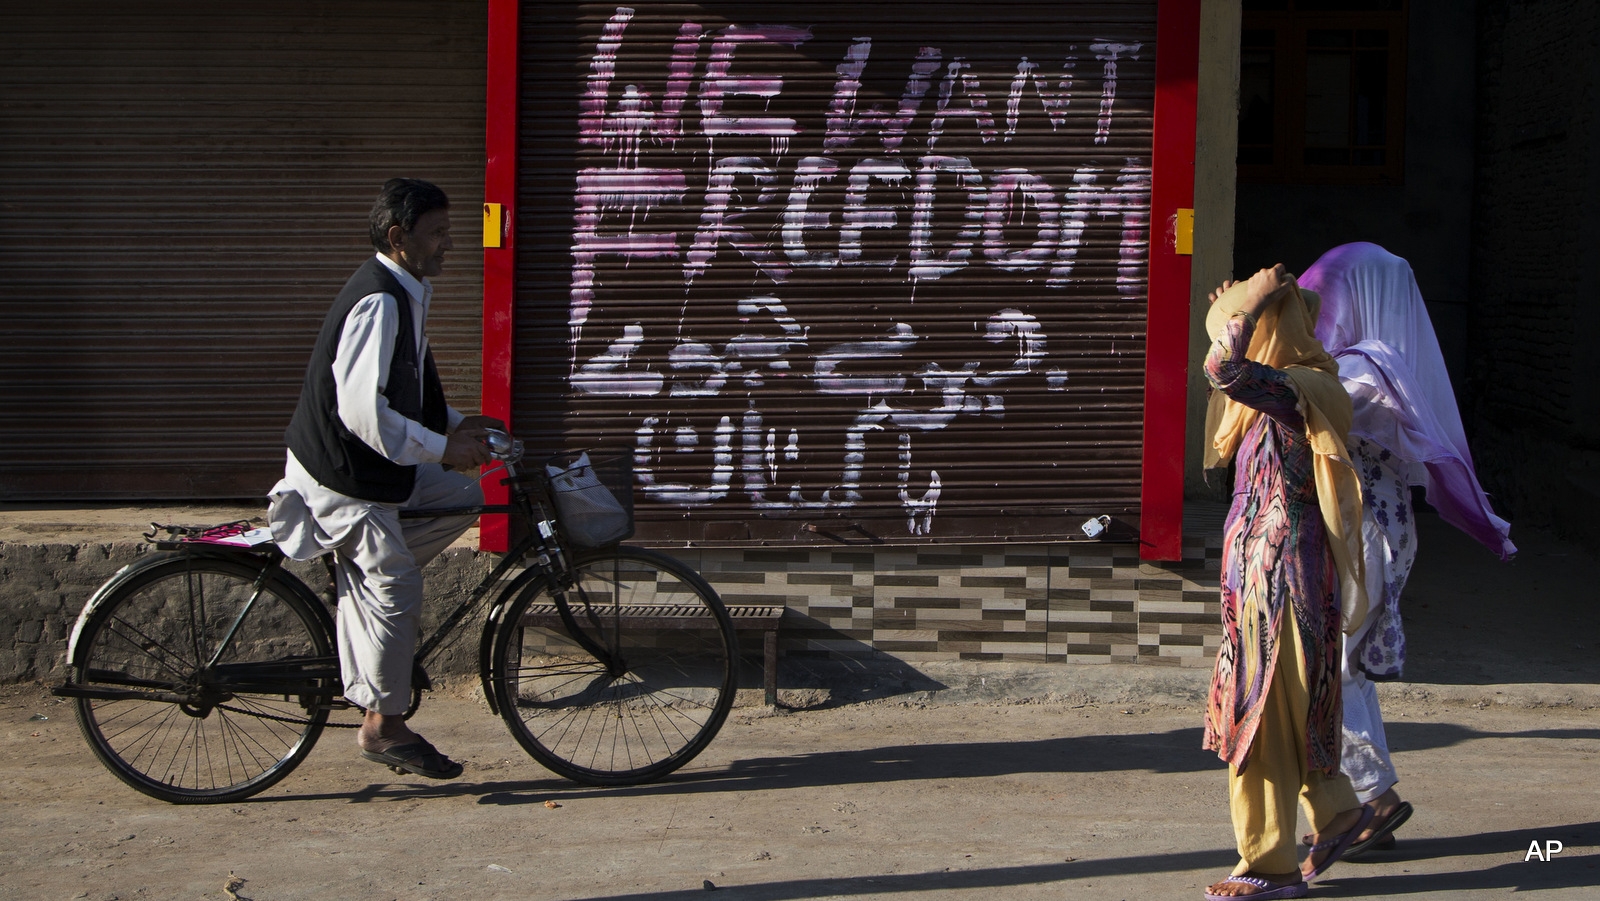 Kashmiri women walk past a closed market with graffiti painted on the shutter of a shop in Urdu that reads